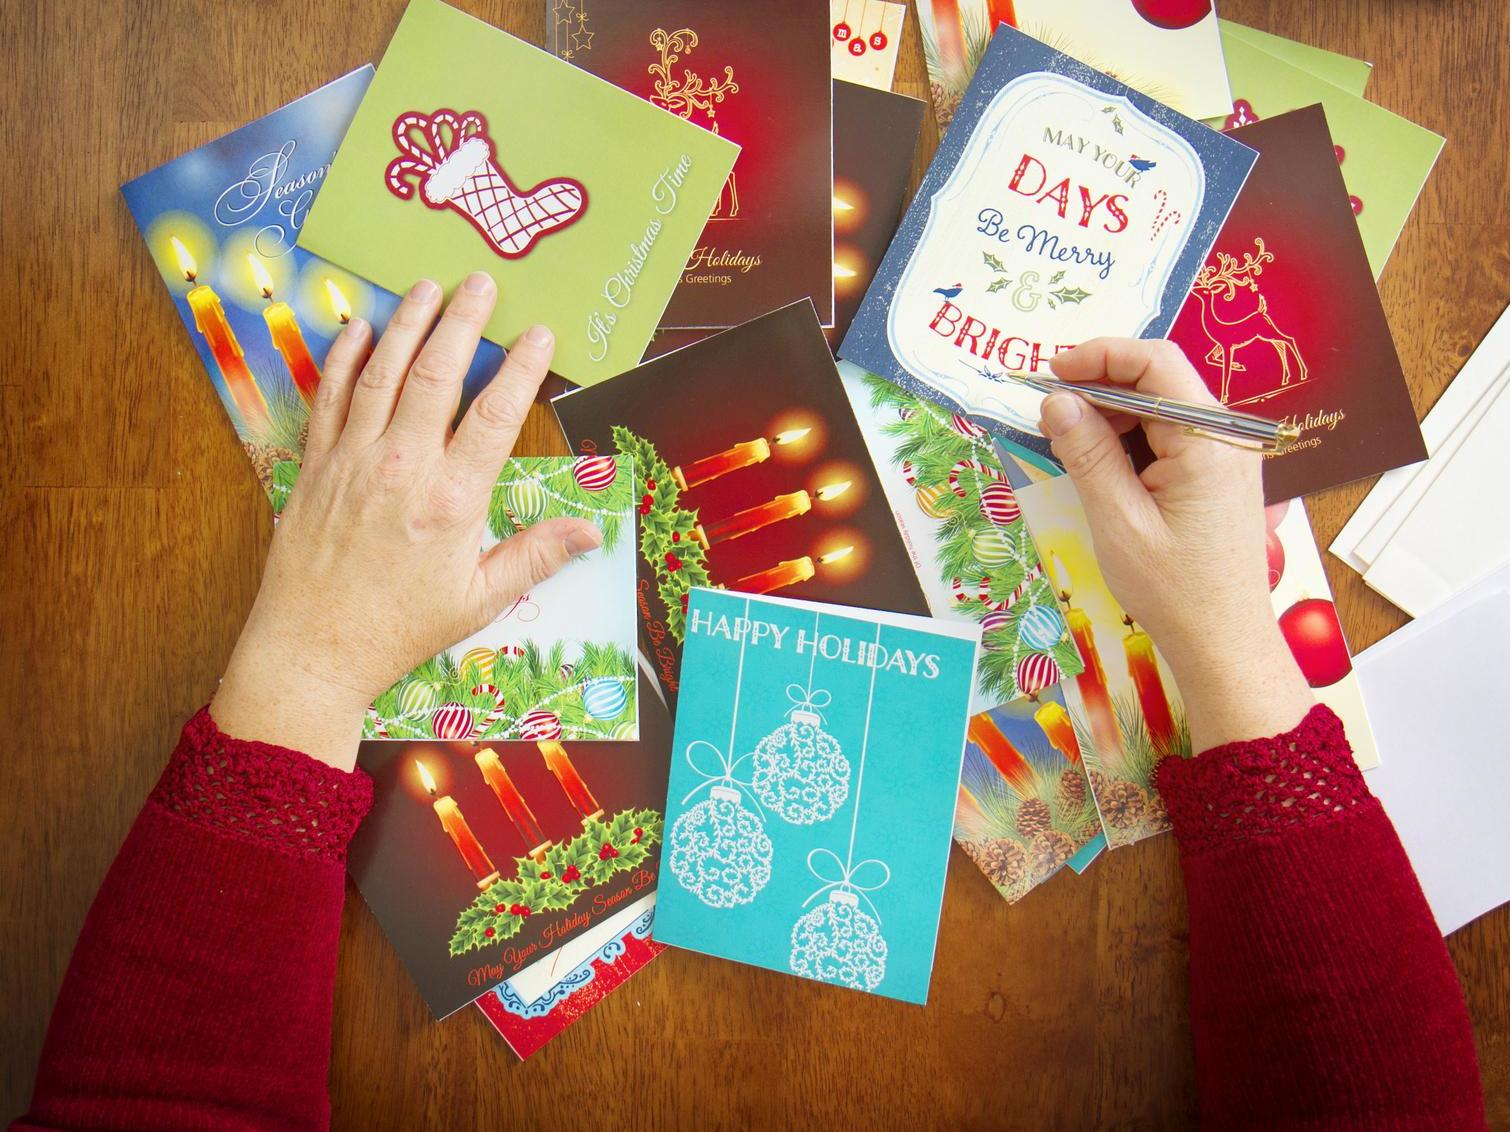 Parents Outraged After Primary School Bans Children From Sending Christmas Cards The Independent The Independent